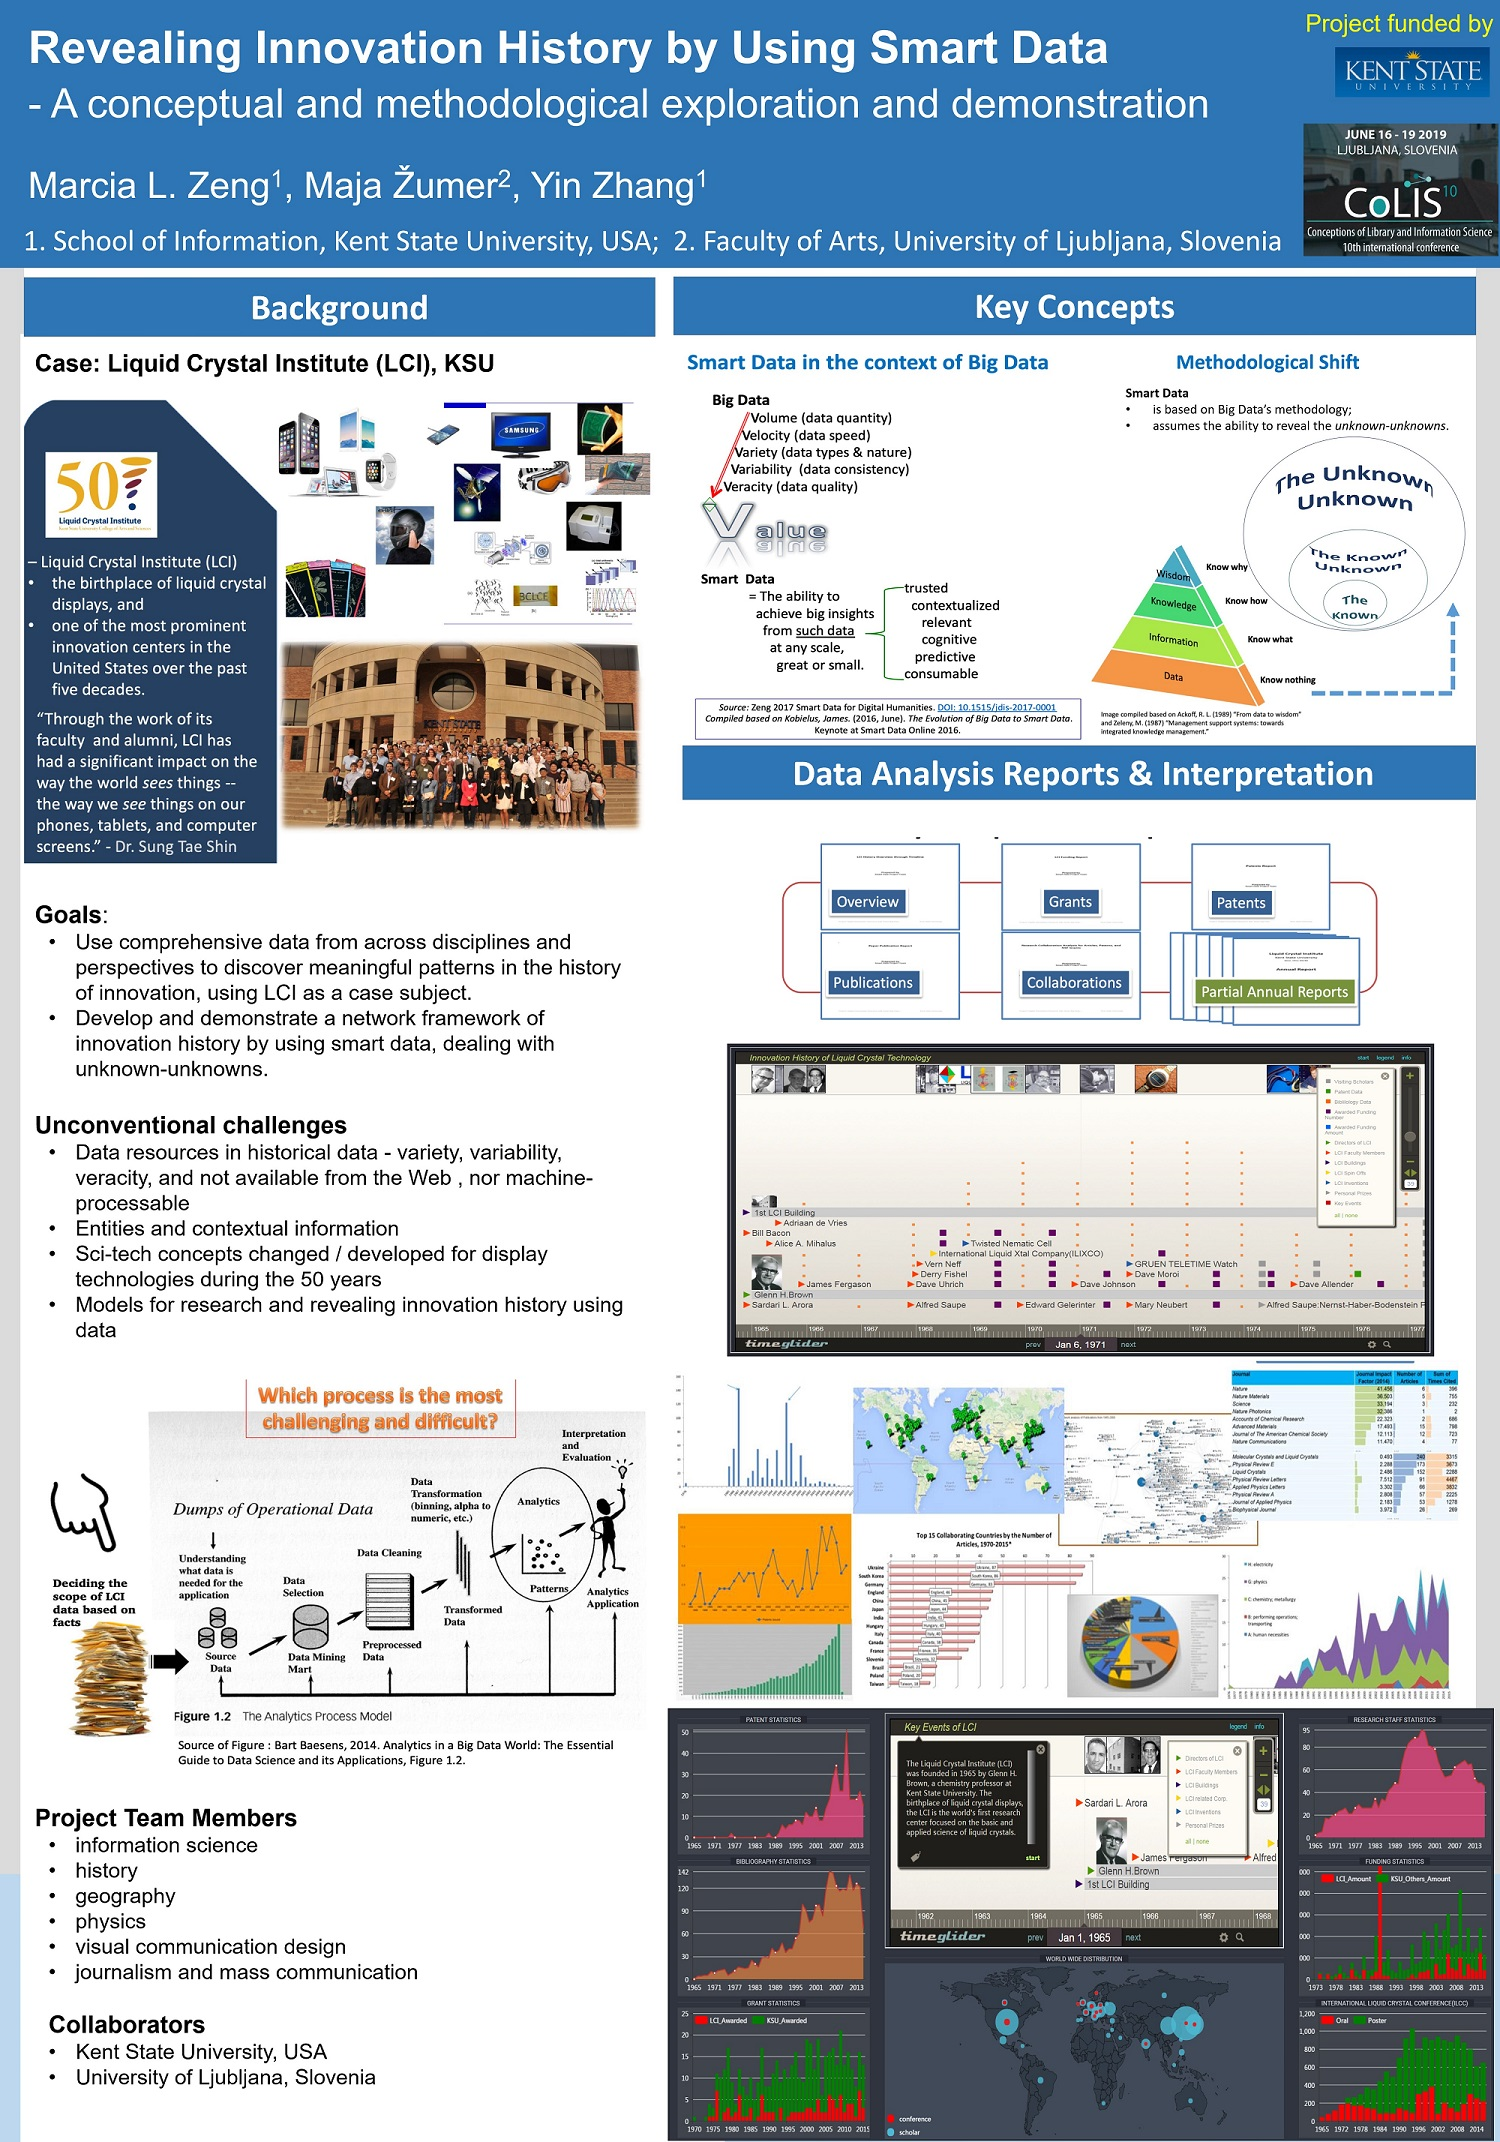 Revealing Innovation History by Using Smart Data Research Poster (Zeng, Zumer, Zhang)